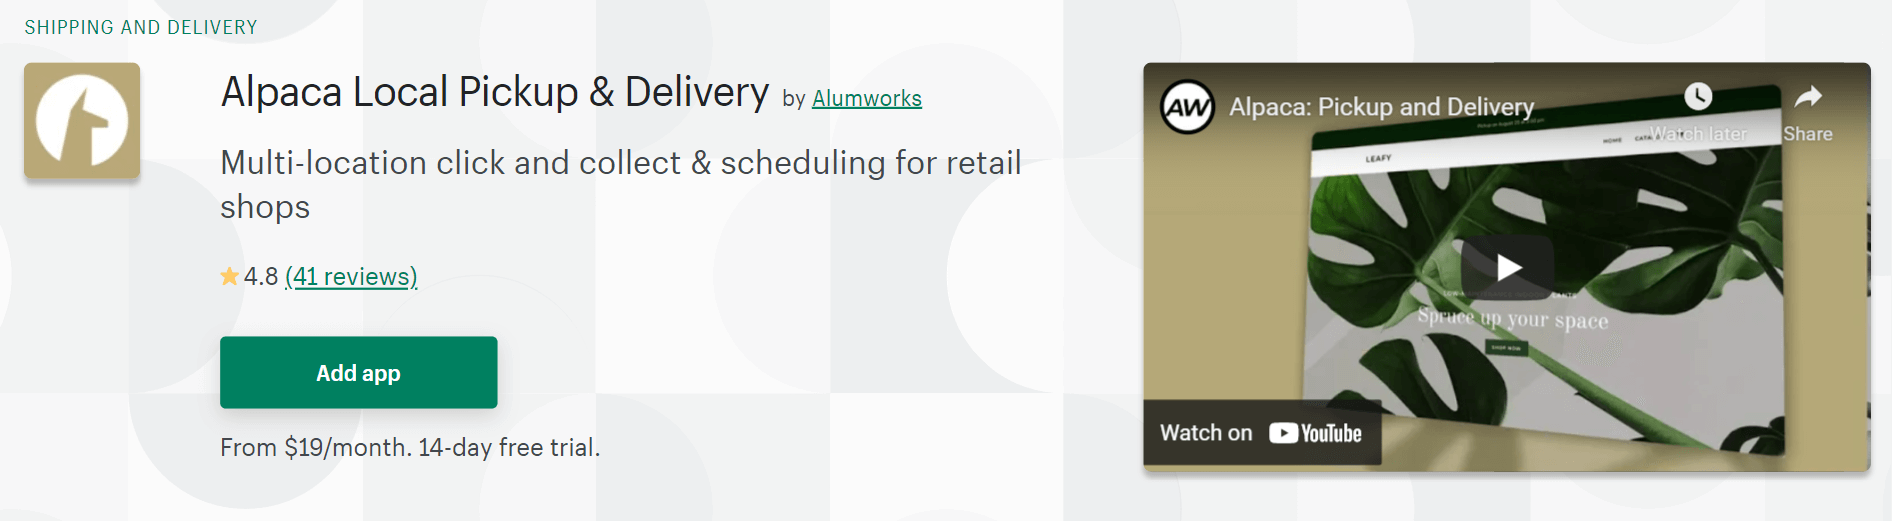 A screenshot of Alumworks`s Alpaca Local Pickup & Delivery app Shopify page.